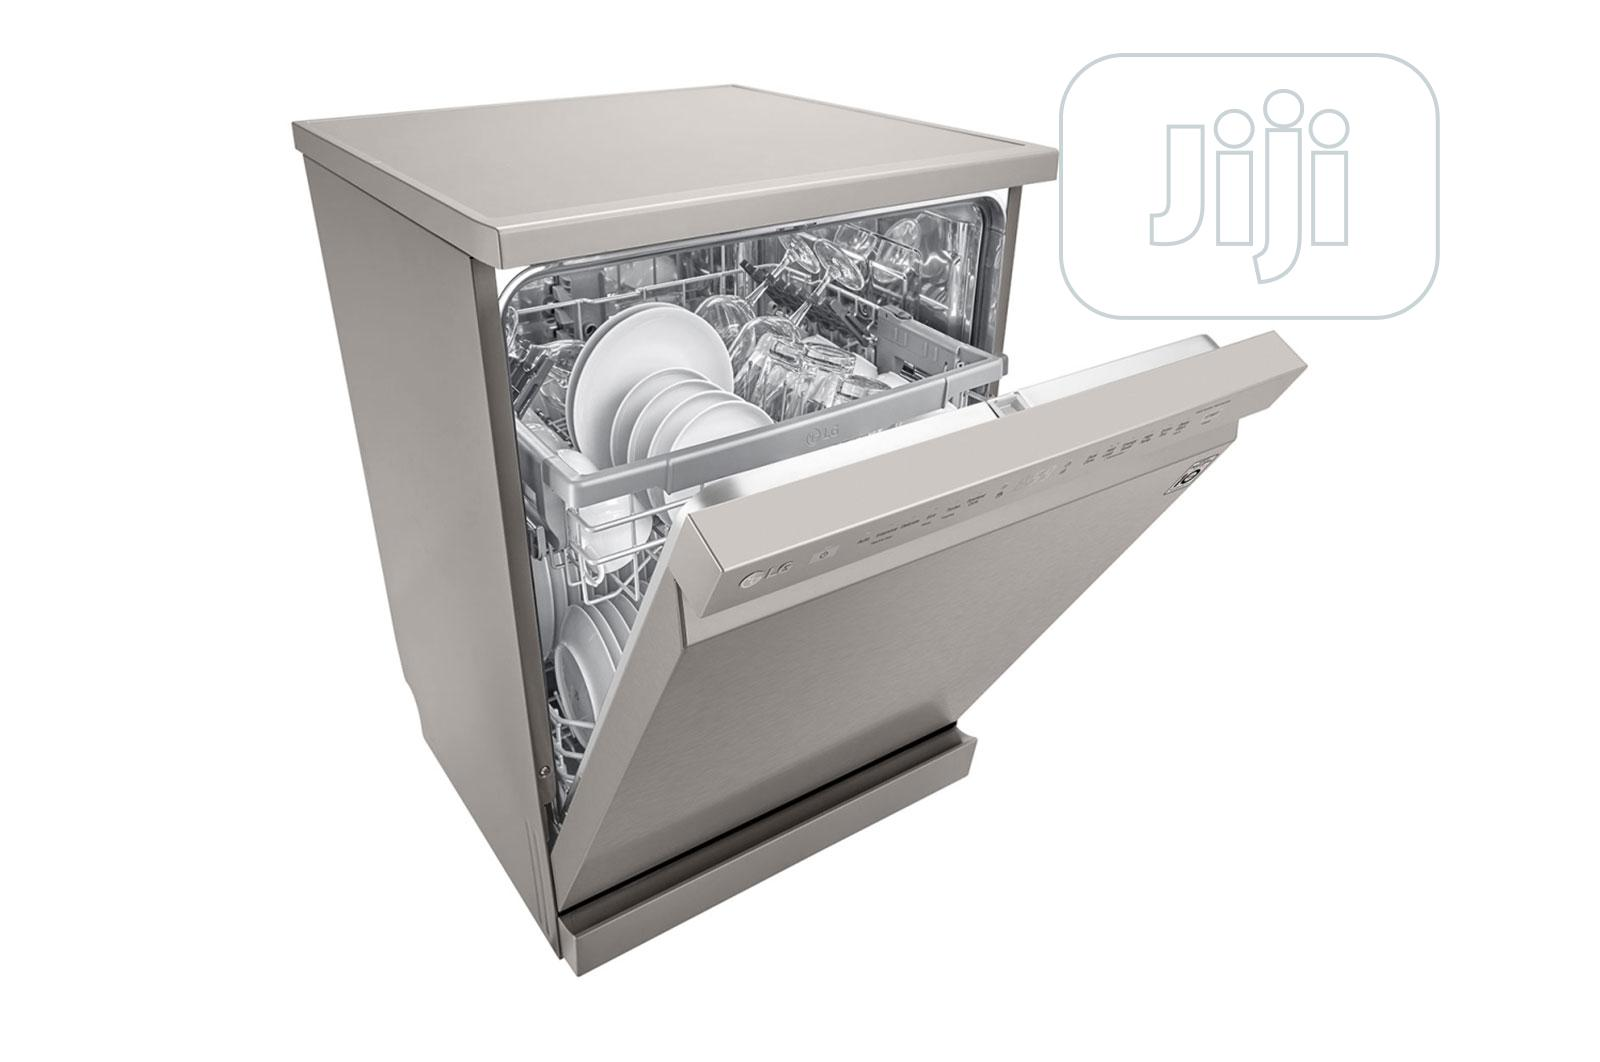 LG Dish Washer Dw 512dfb (Silver) | Kitchen Appliances for sale in Central Business Dis, Abuja (FCT) State, Nigeria